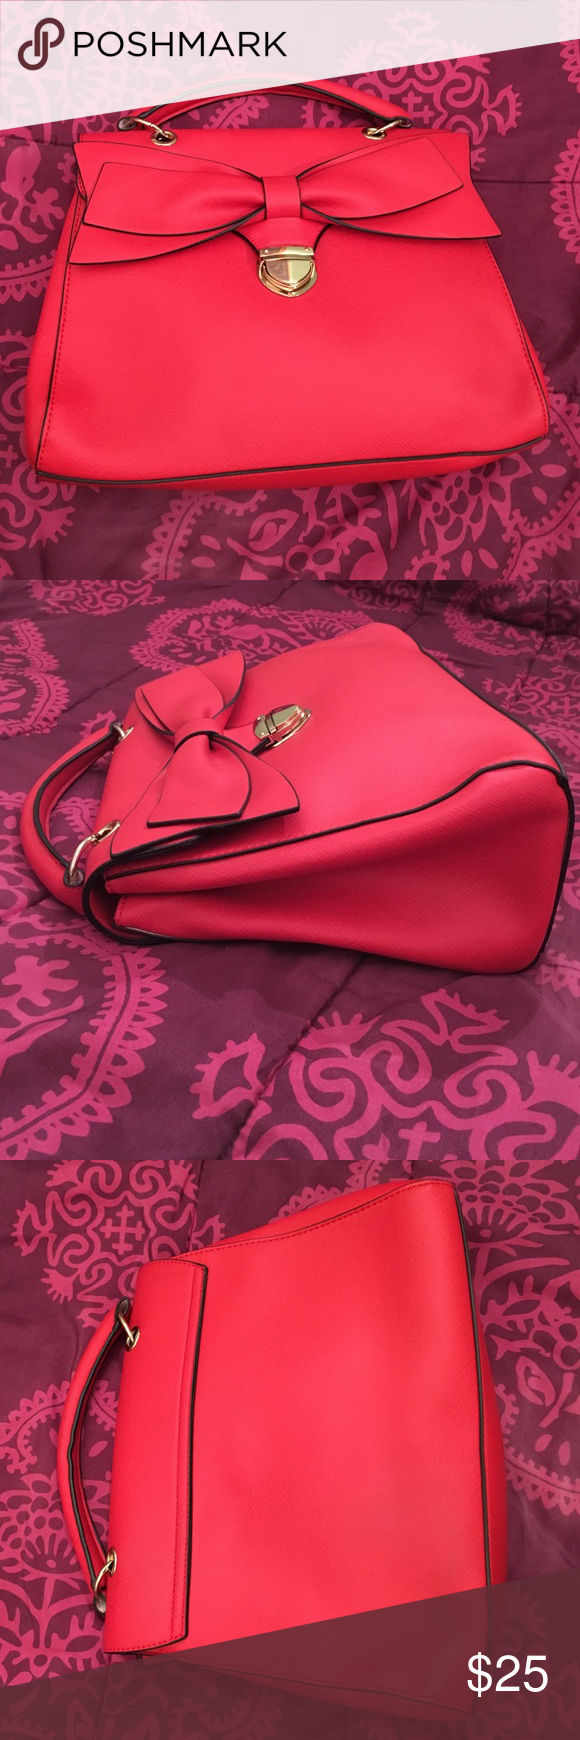 30e332cc3f ALDO Red Bow Purse ALDO Red Bow Purse. Super cute bag with big bow detail  to give your outfit a pop of color! Excellent and sturdy quality-  structures bag.